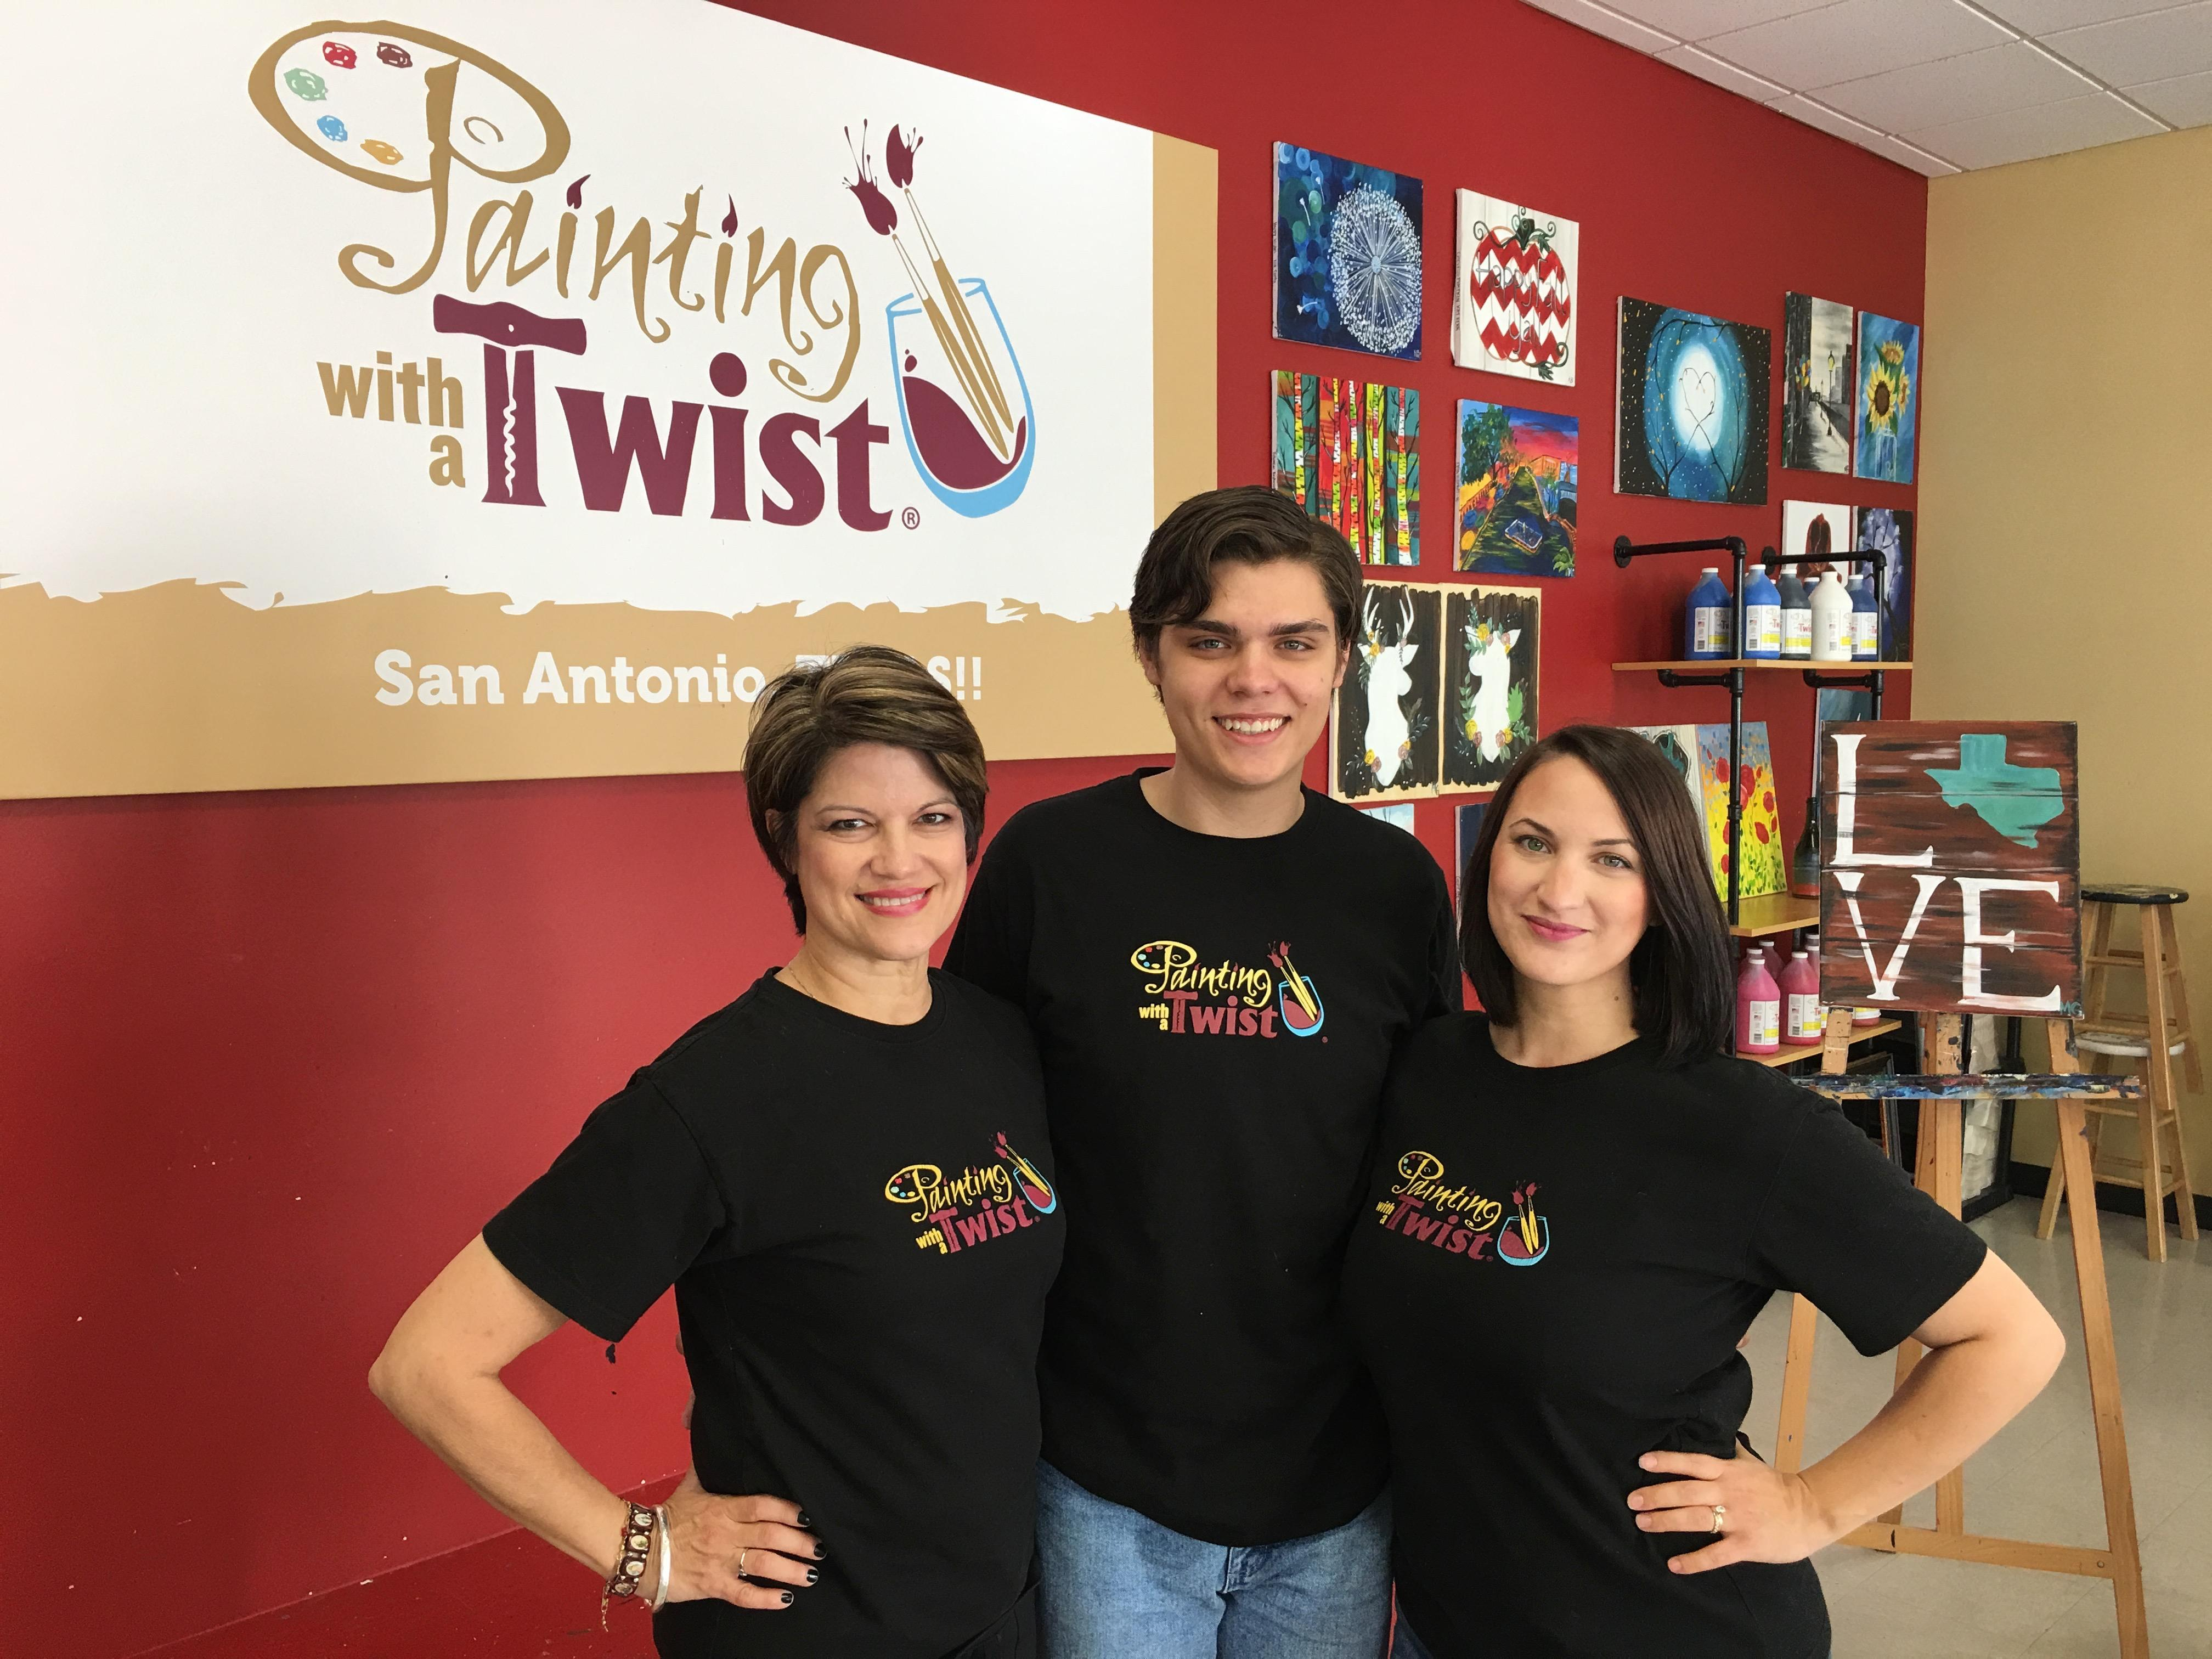 Painting with a twist san antonio tx business directory for Painting with a twist san diego